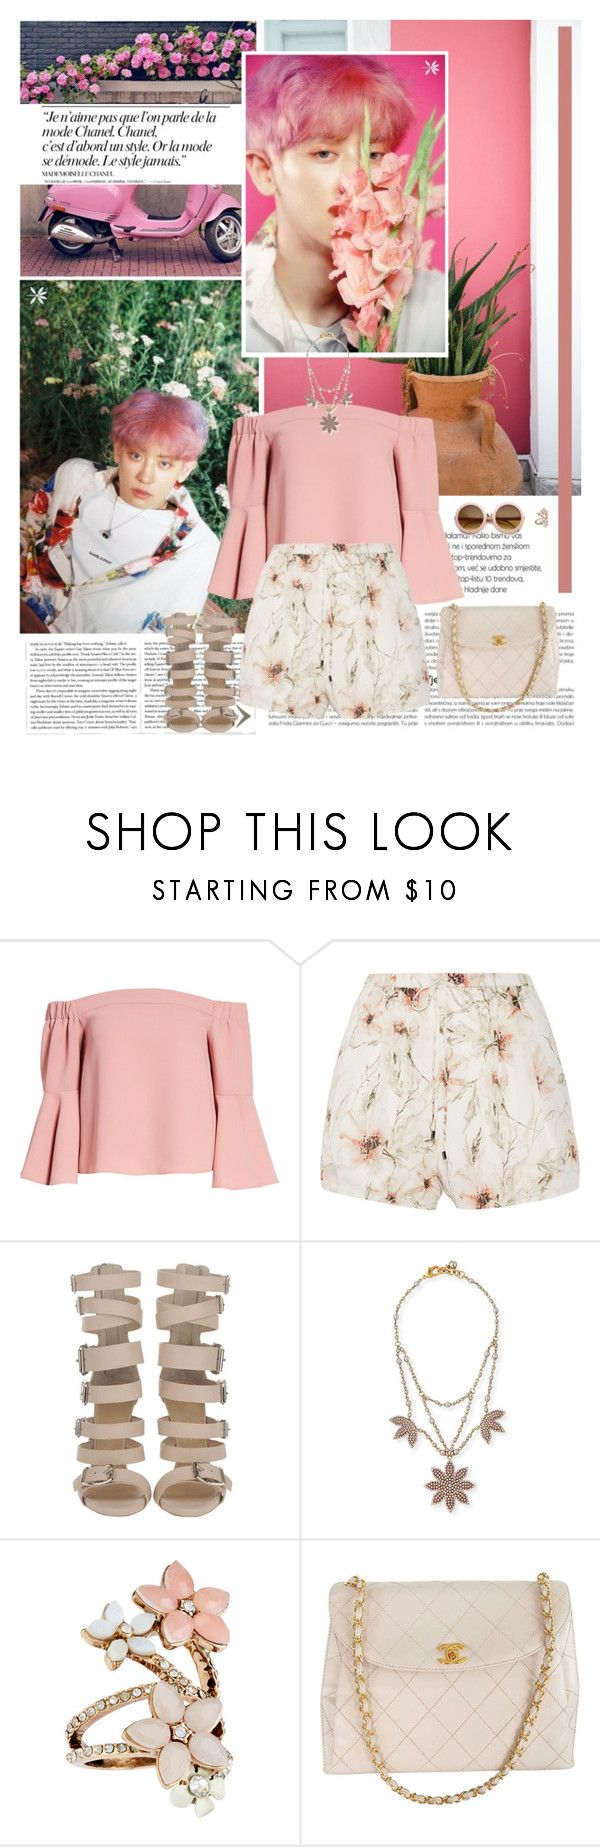 """""""Ko Ko Bop"""" by karydkaulitz ❤ liked on Polyvore featuring Chanel, Topshop, Haute Hippie, Lulu Frost, Accessorize, kpop, EXO and chanyeol"""